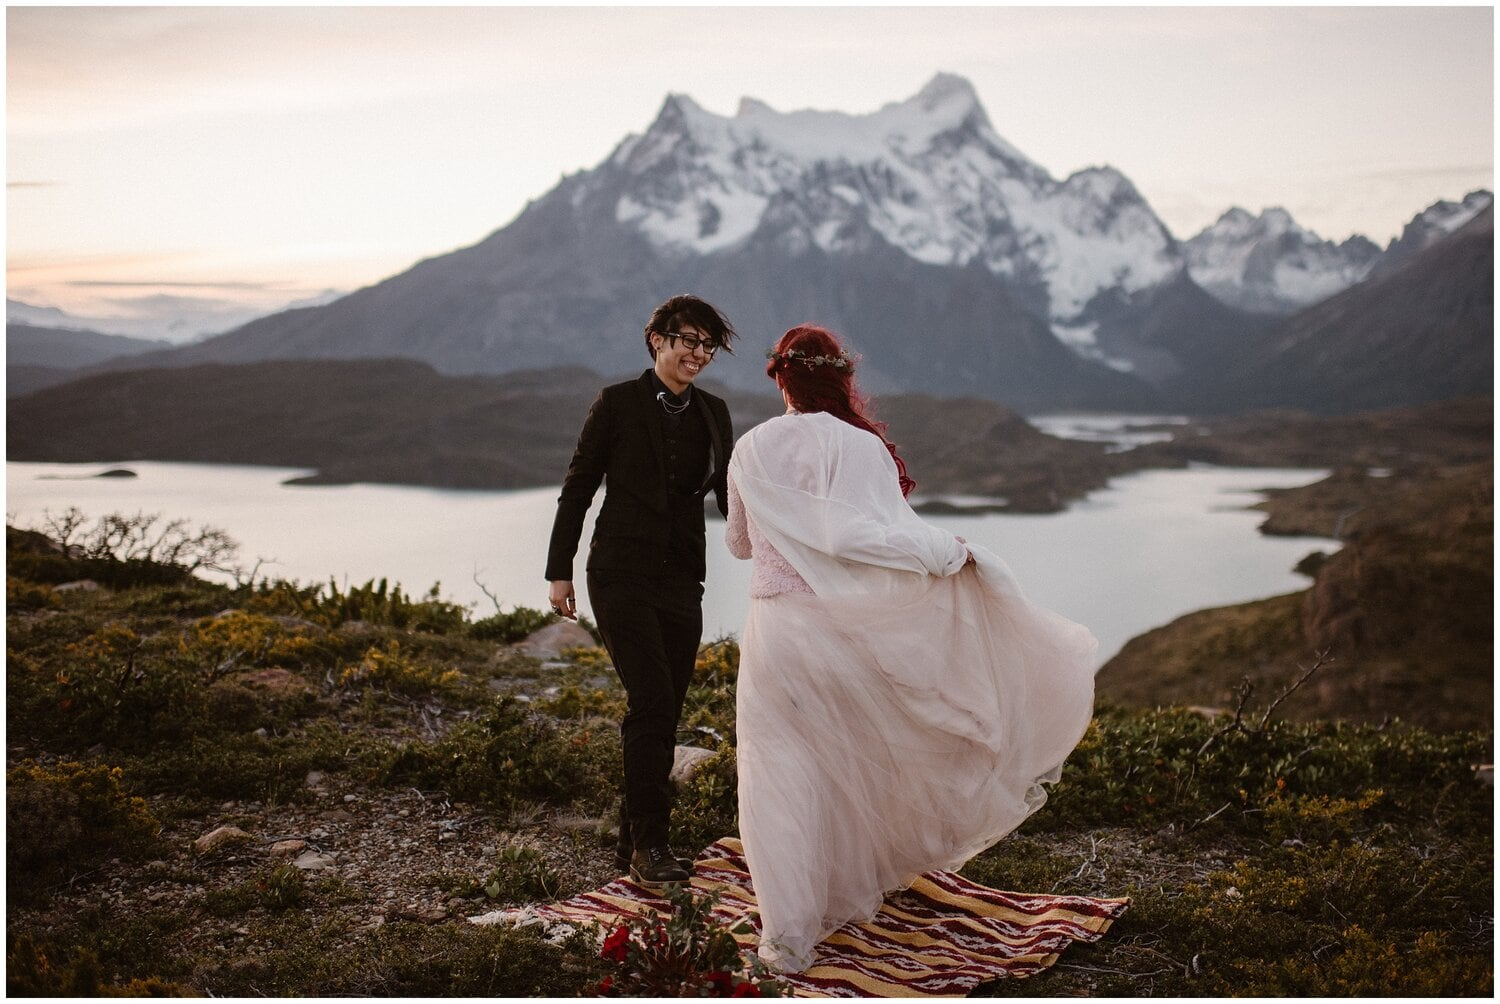 Couple smiles at each other on their wedding day in Patagonia.